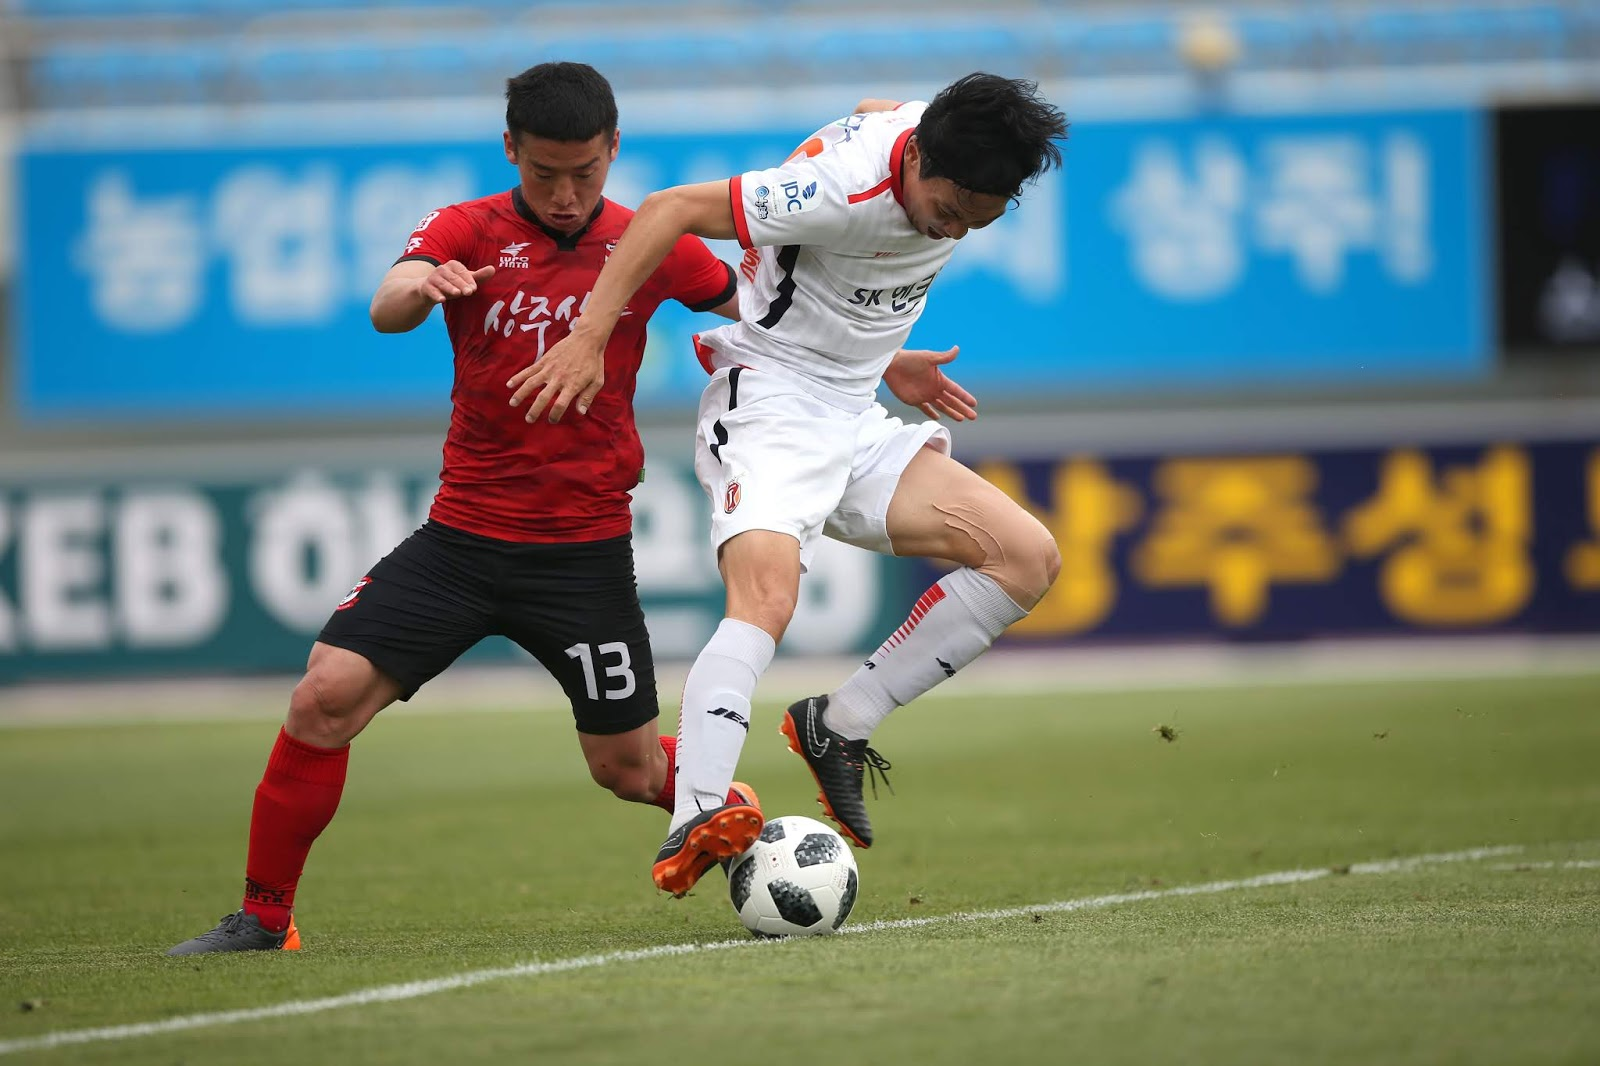 K League 1 Preview: Sangju Sangmu vs Jeju United